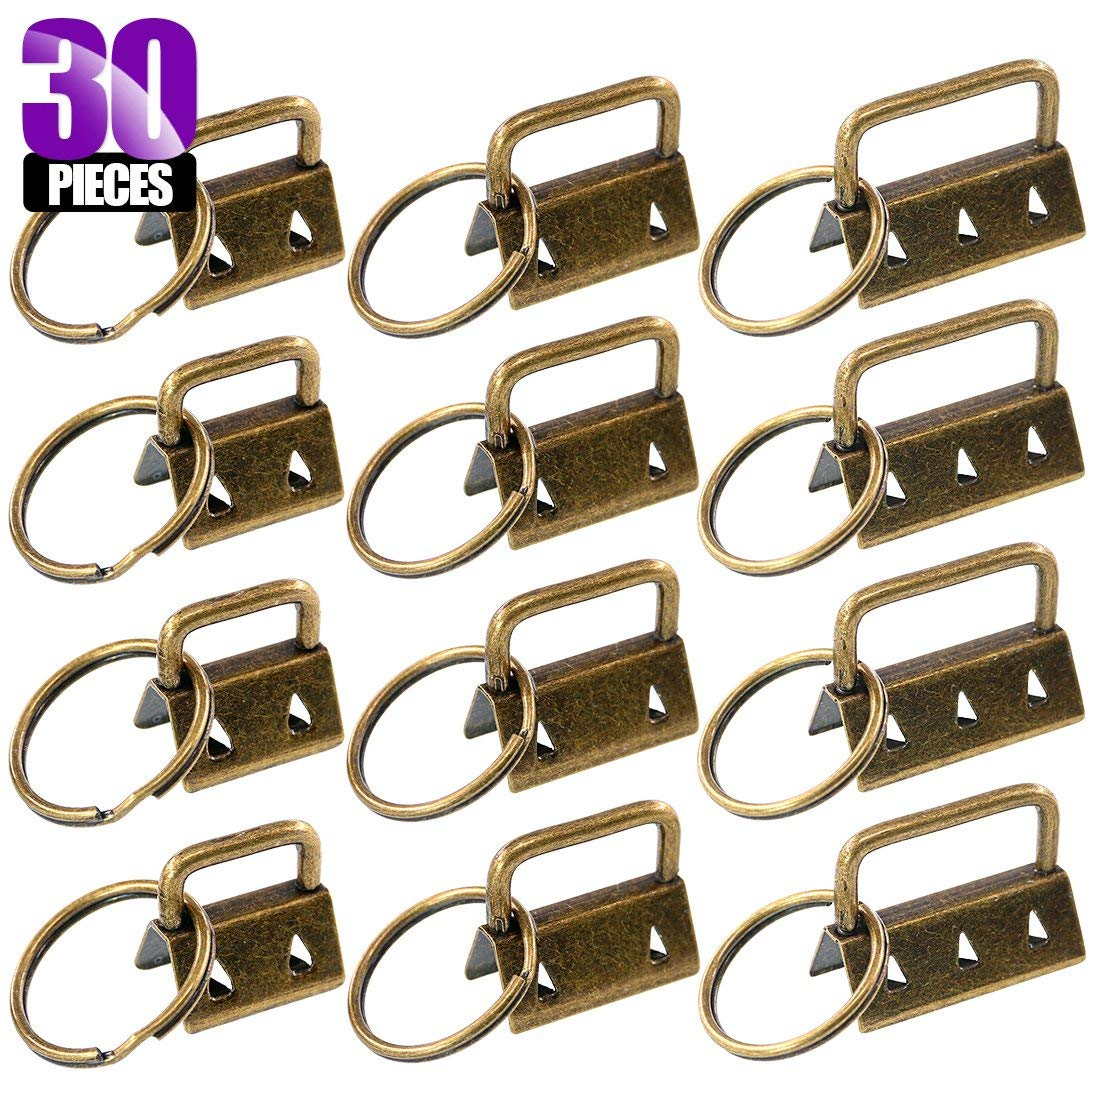 Swpeet 30Pcs Bronze 3 Sizes Key Fob Hardware with Key Rings Sets, Perfect for Bag Wristlets with Fabric/Ribbon / Webbing/Embossed and Other Hand Craft - 4/5Inch,1Inch, 5/4Inch